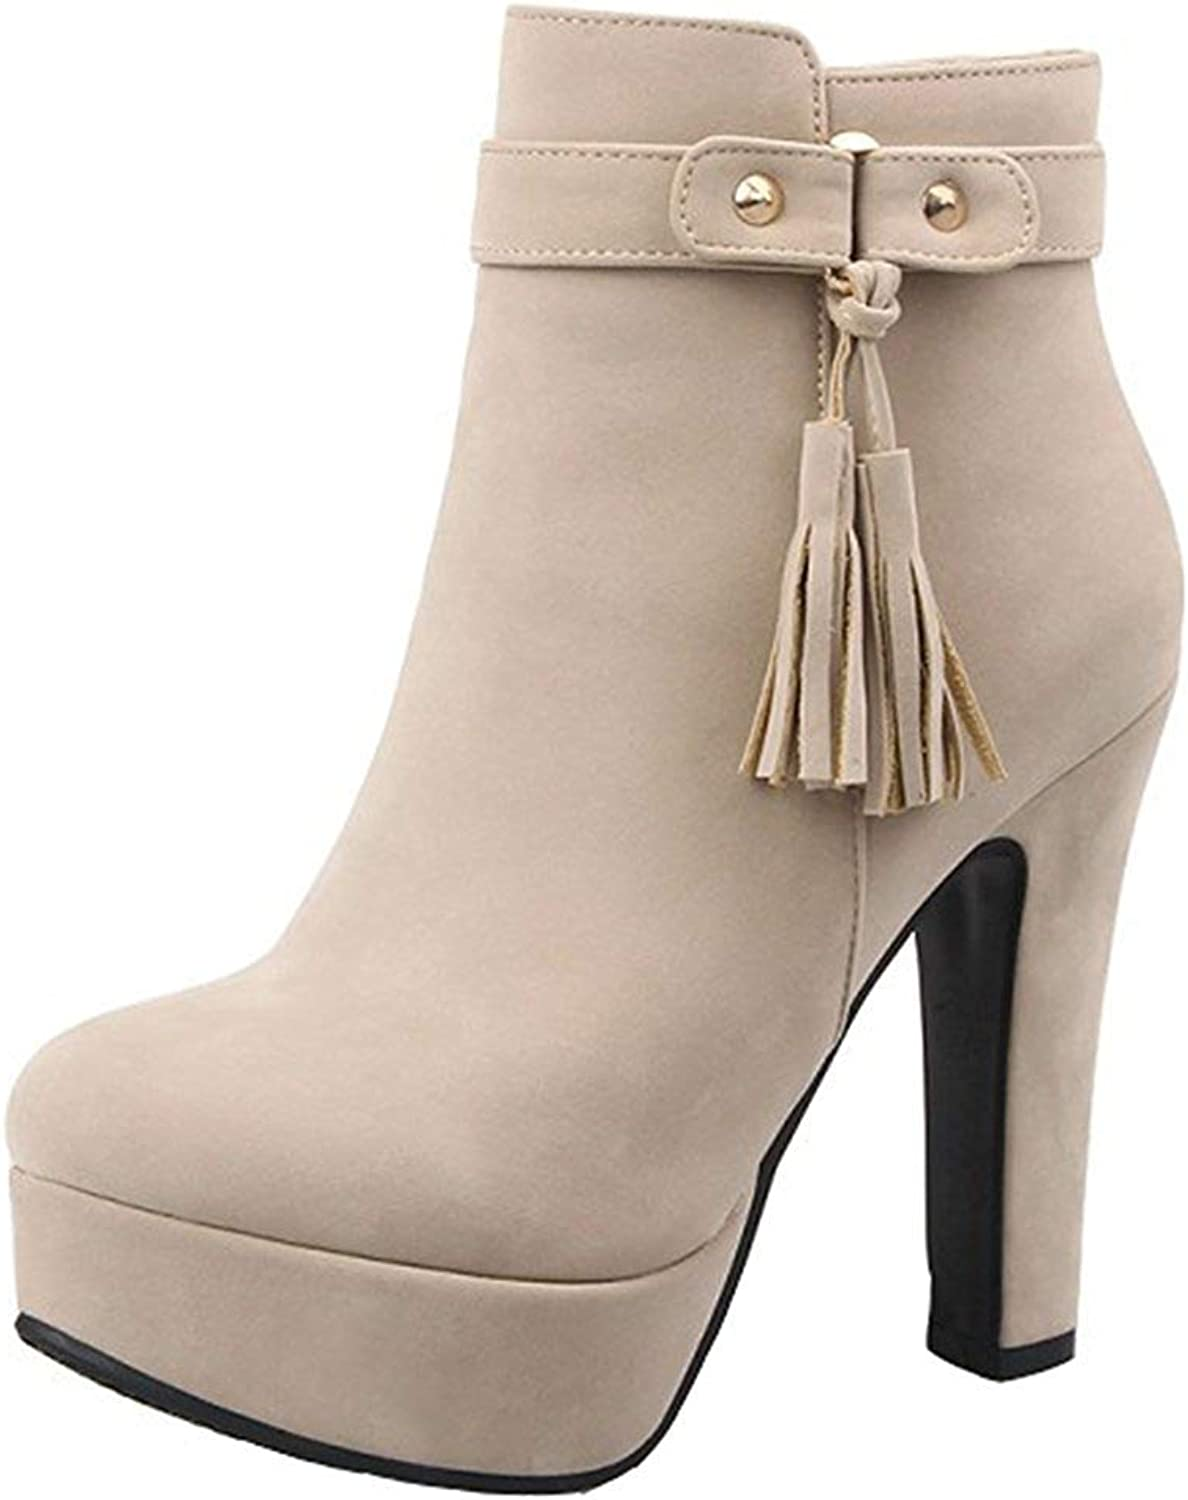 Gcanwea Women's Elegant Faux Suede Fringes Belt Round Toe Chunky High Heel Platform Side Zipper Ankle Boots Dress Sexy Dexterous Easy to Match No Grinding Feet Beige 7 M US Ankle Boots